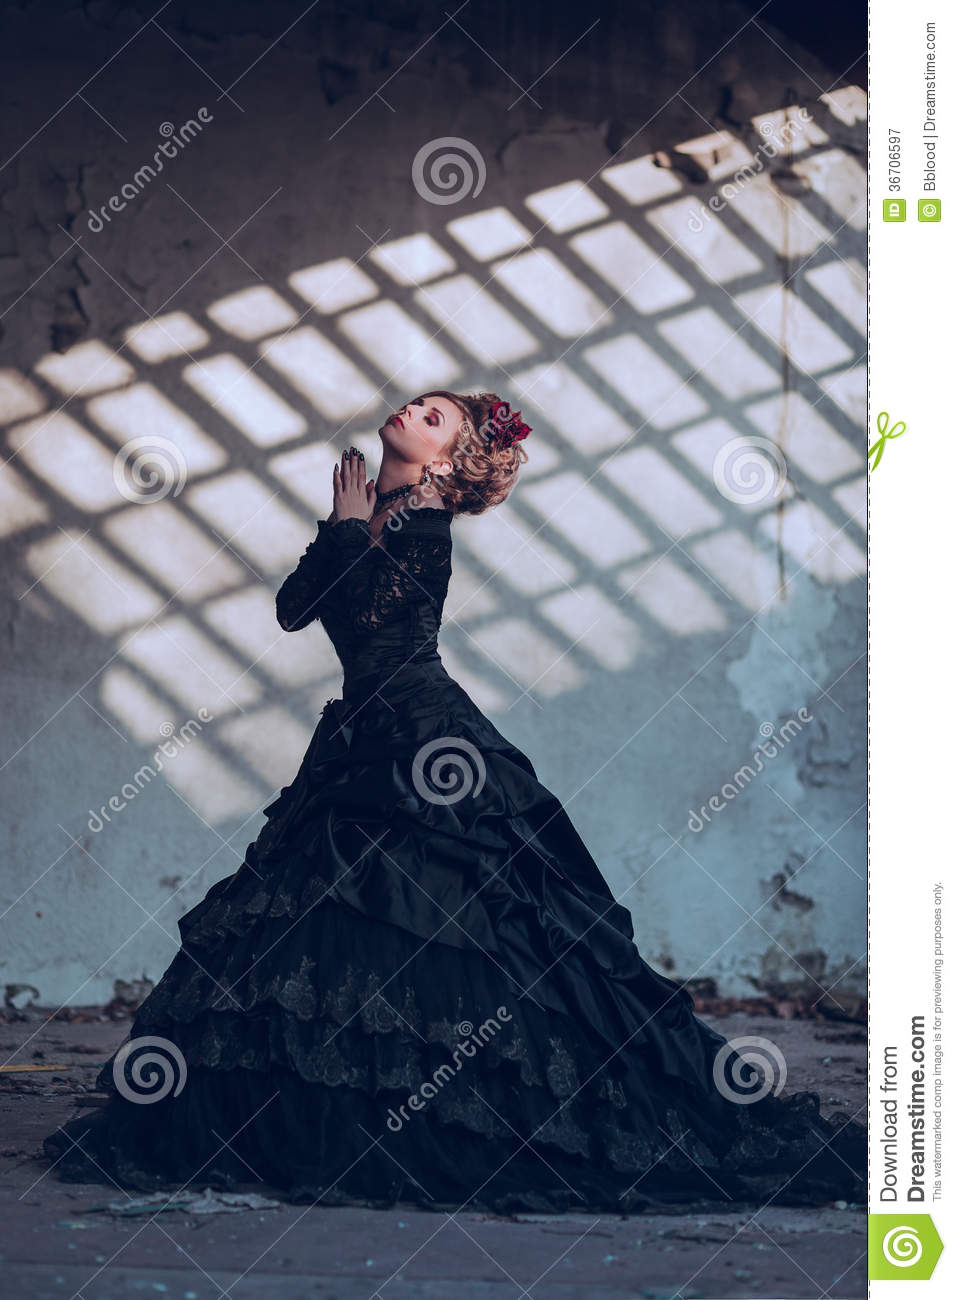 Mysterious woman in black dress